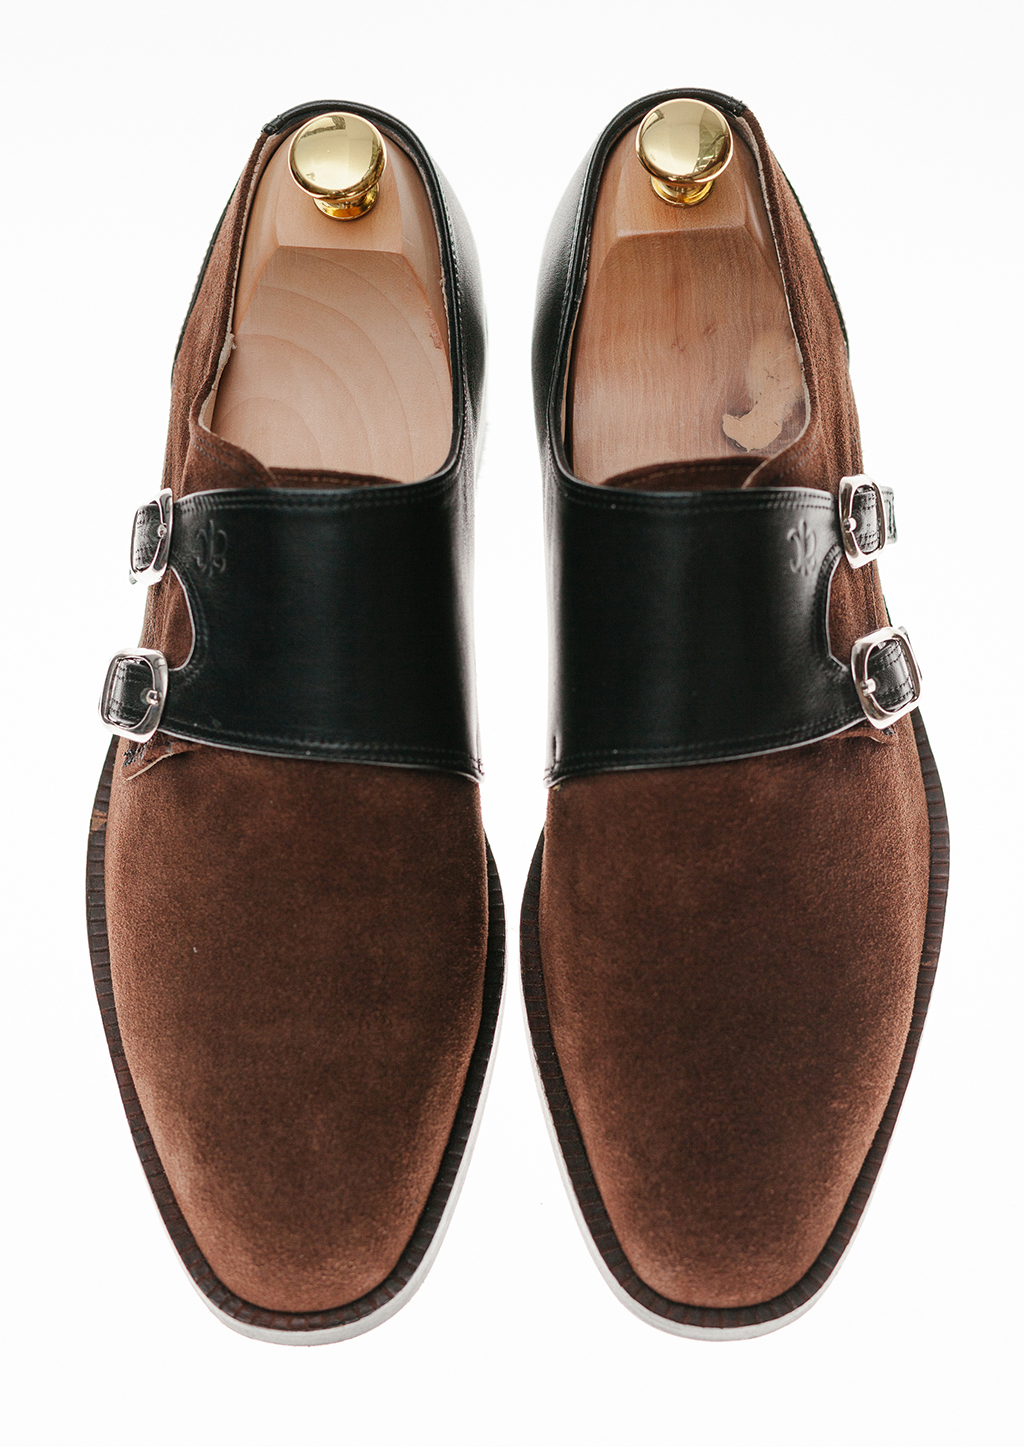 Brown Dress Shoes With Black Tie